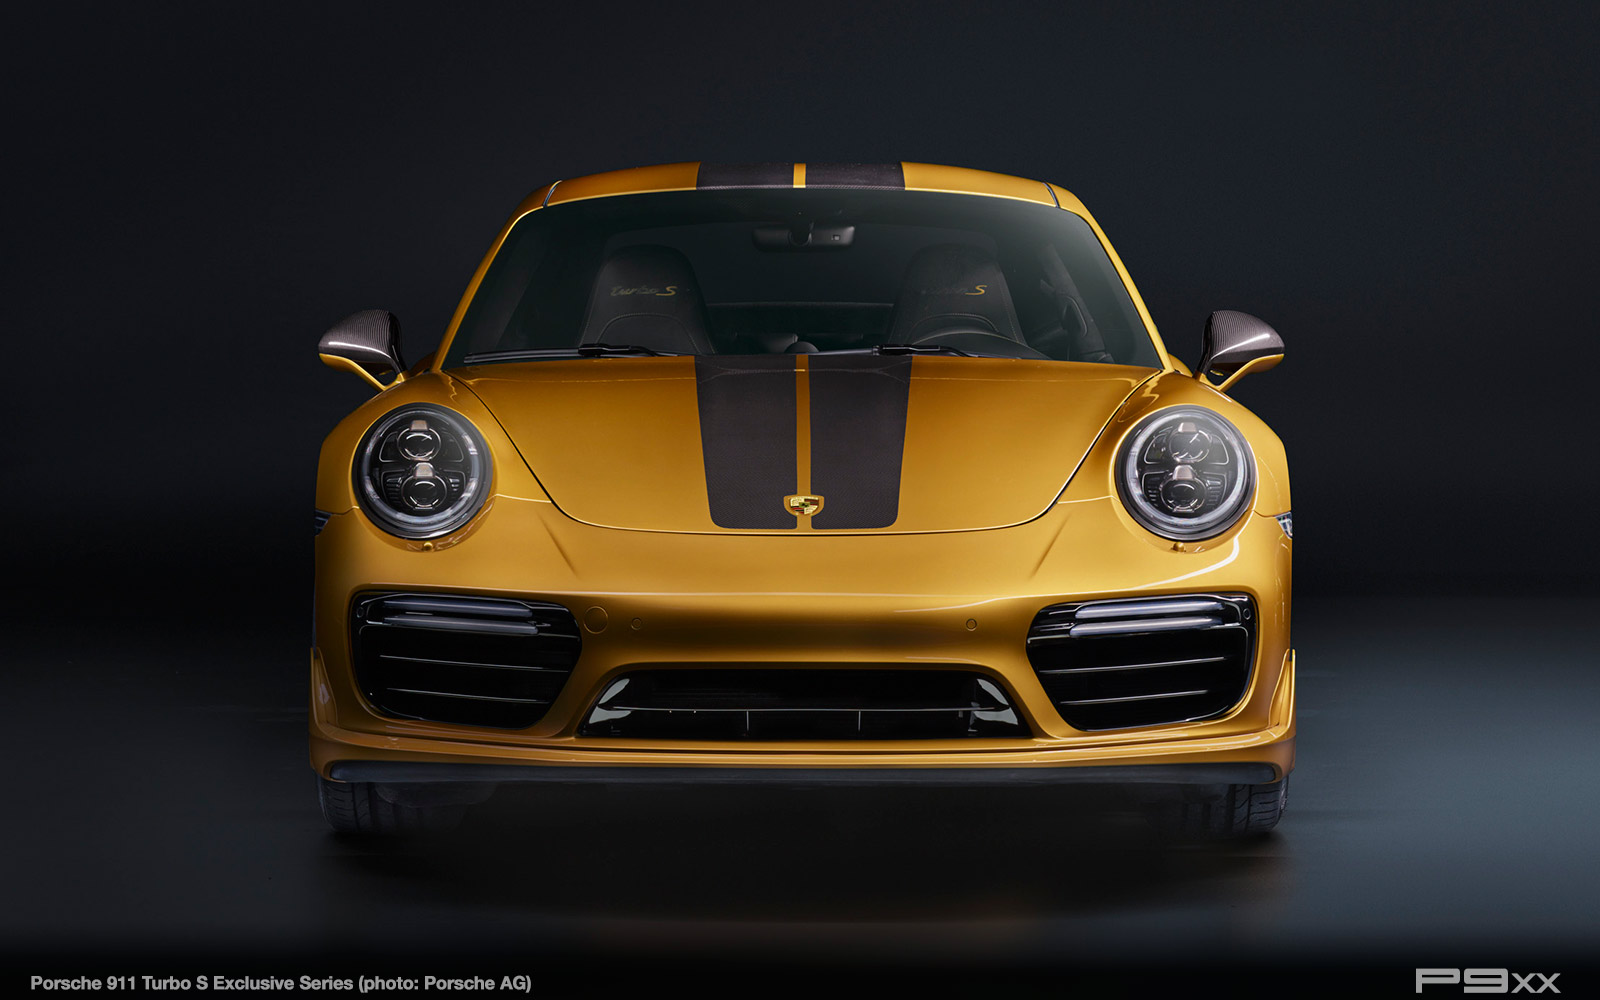 911 Turbo S Exclusive Series Coupe (EU, 991.2)